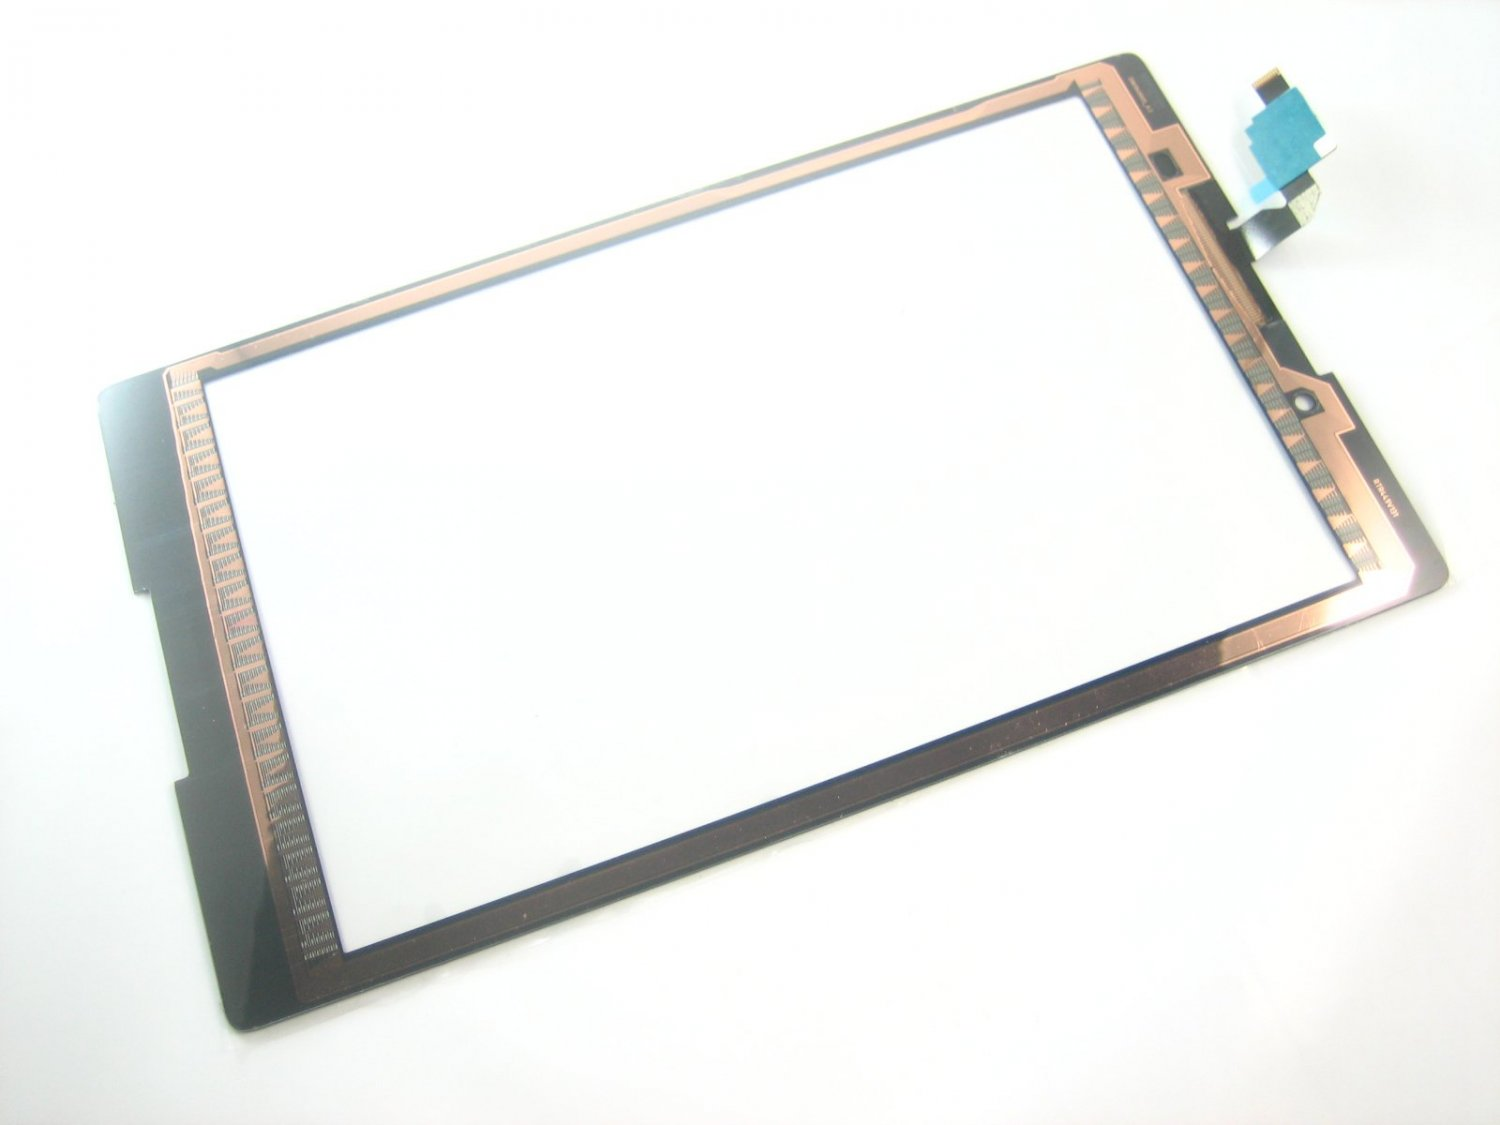 Touch Screen Digitizer Glass Repair Parts for Lenovo Tab 2 A8-50F 05169-MnTSA8-50Fnnnn